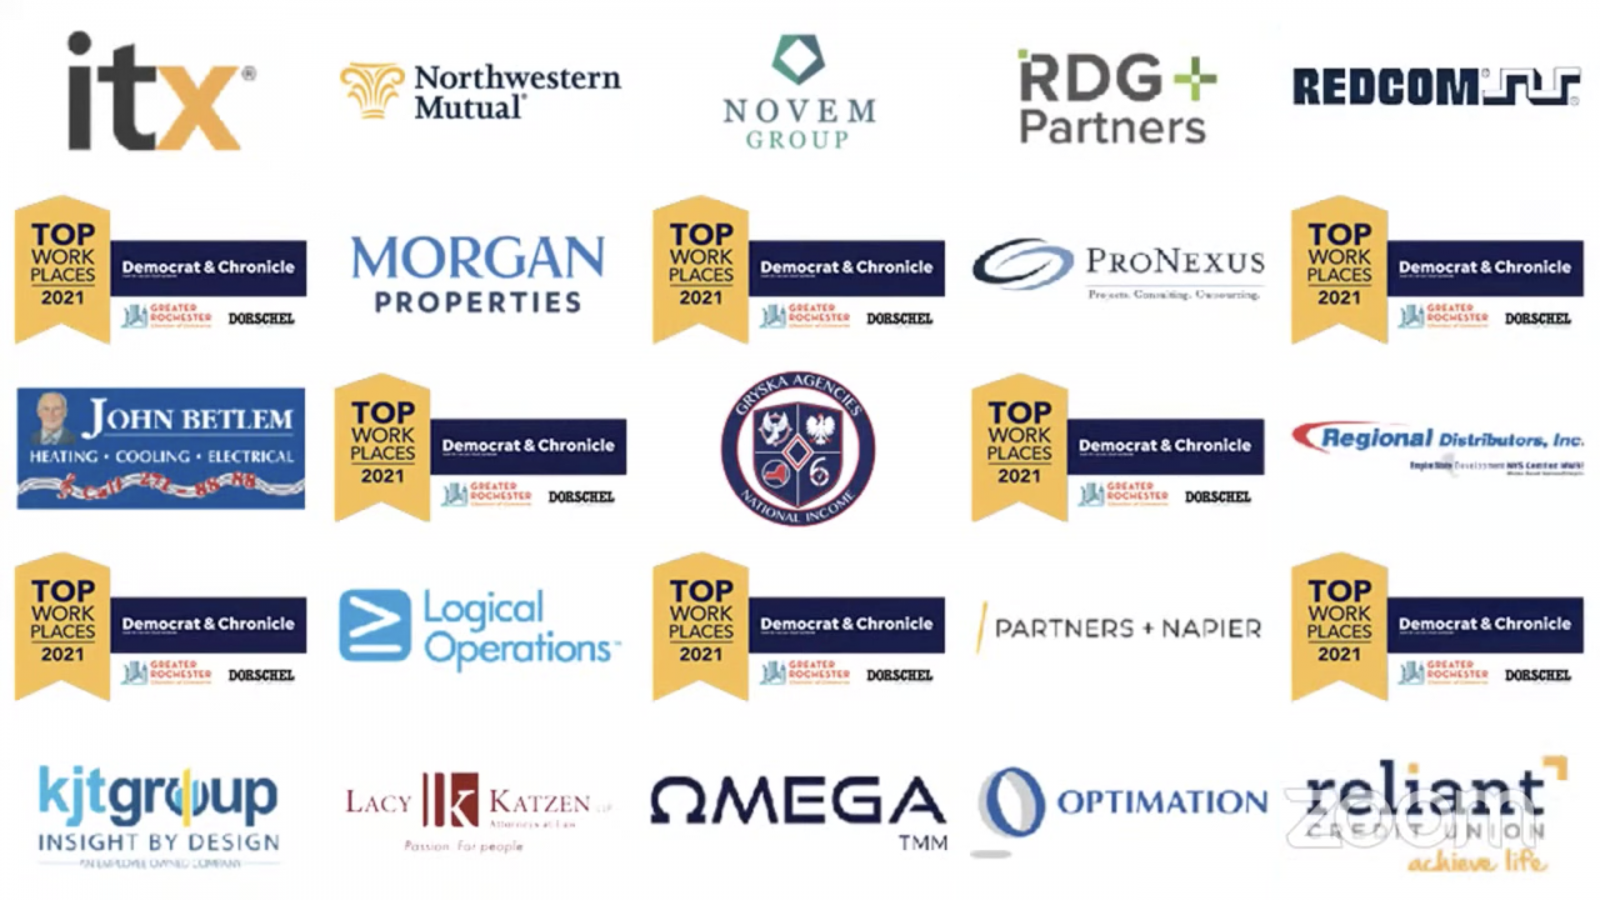 Rochester D&C Top Workplaces - Omega TMM